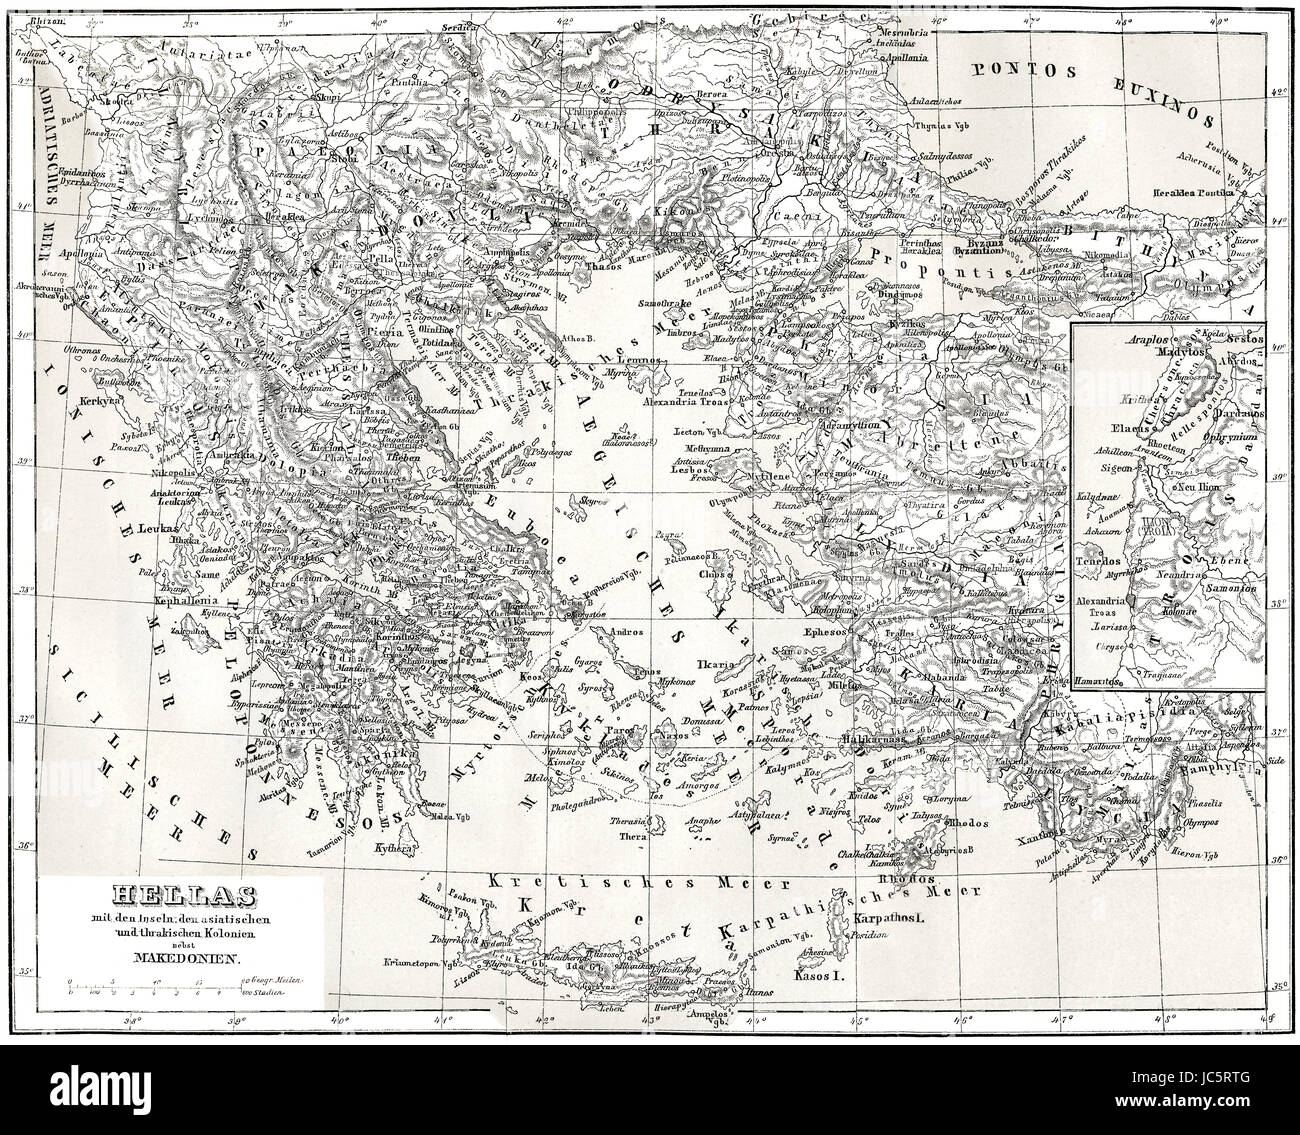 Historical map of ancient Greece with Asian and Thracian Colonies - Stock Image